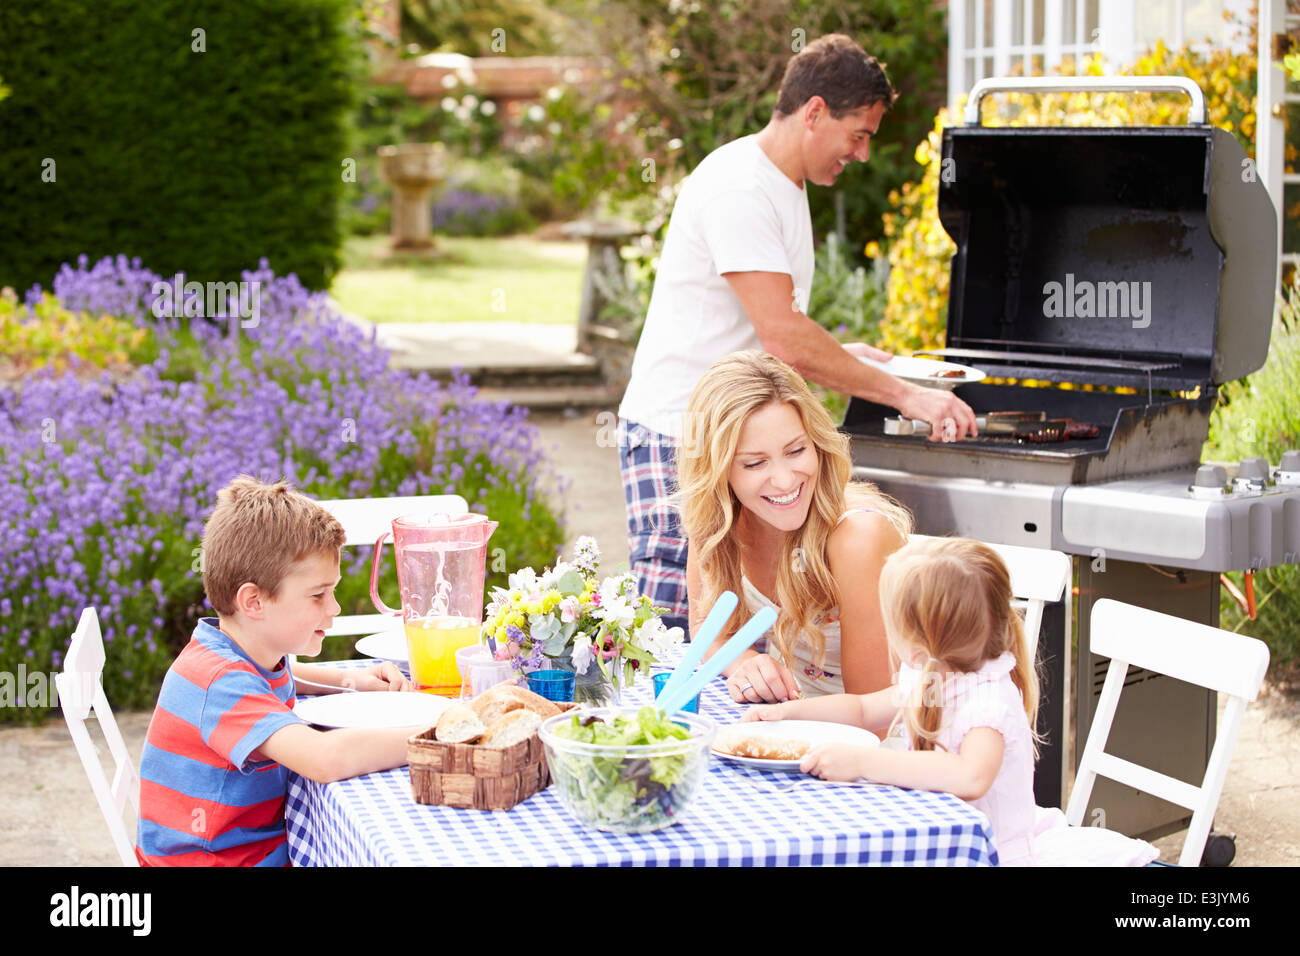 Family Enjoying Outdoor Barbeque In Garden - Stock Image